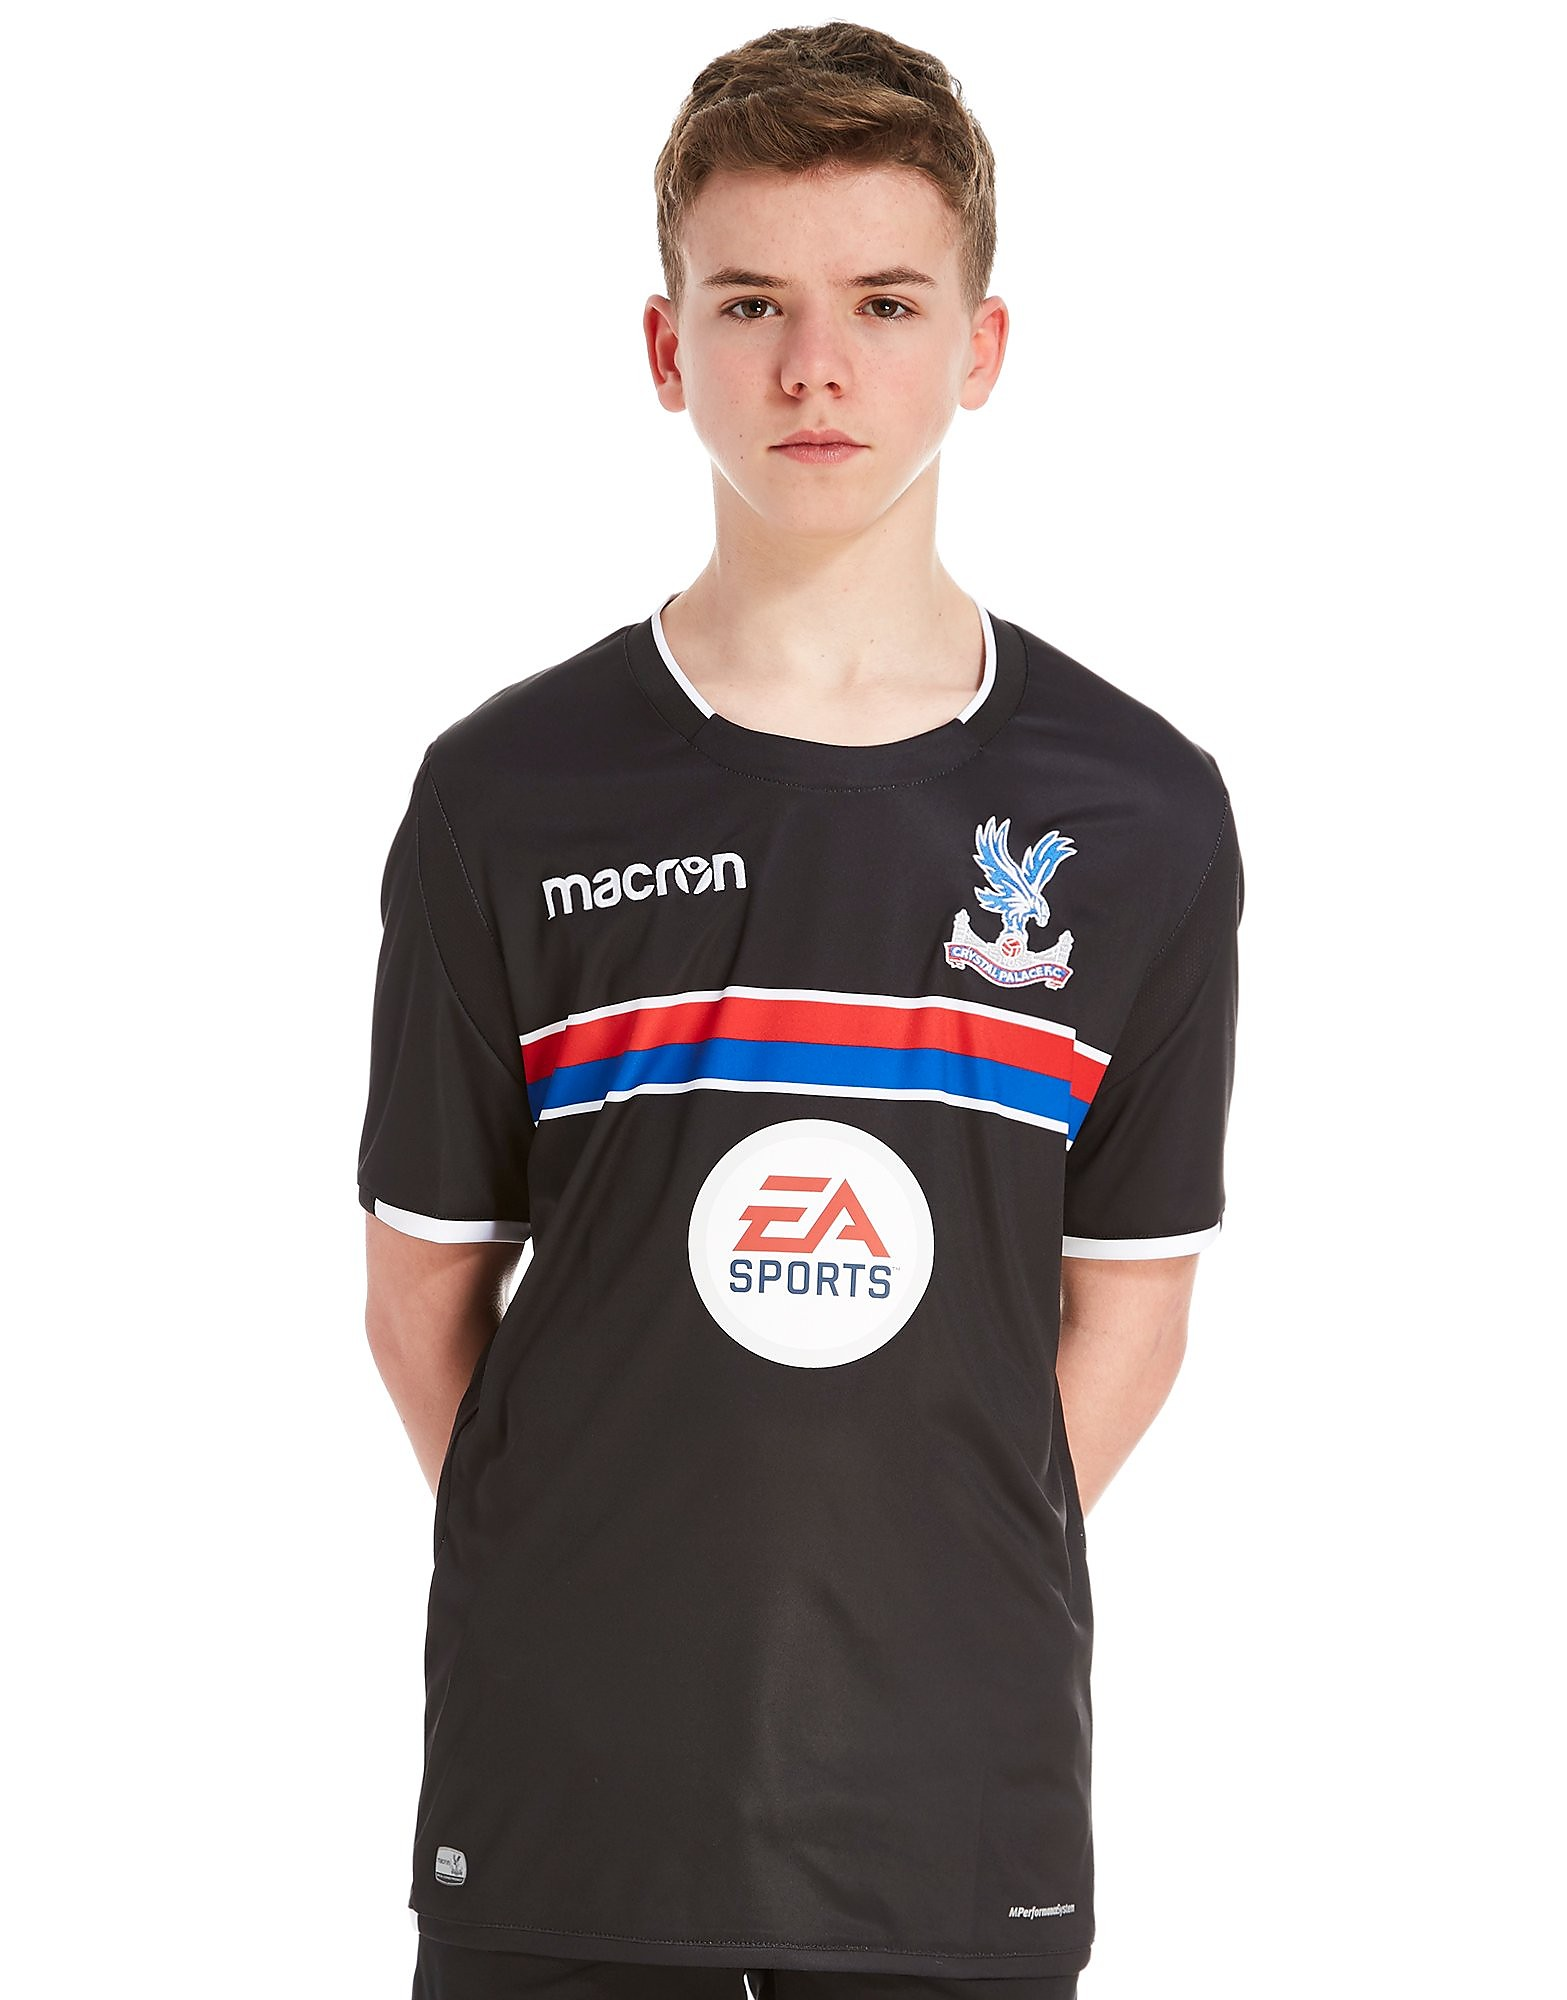 Macron Crystal Palace FC 2017/18 Maglia Away Junior